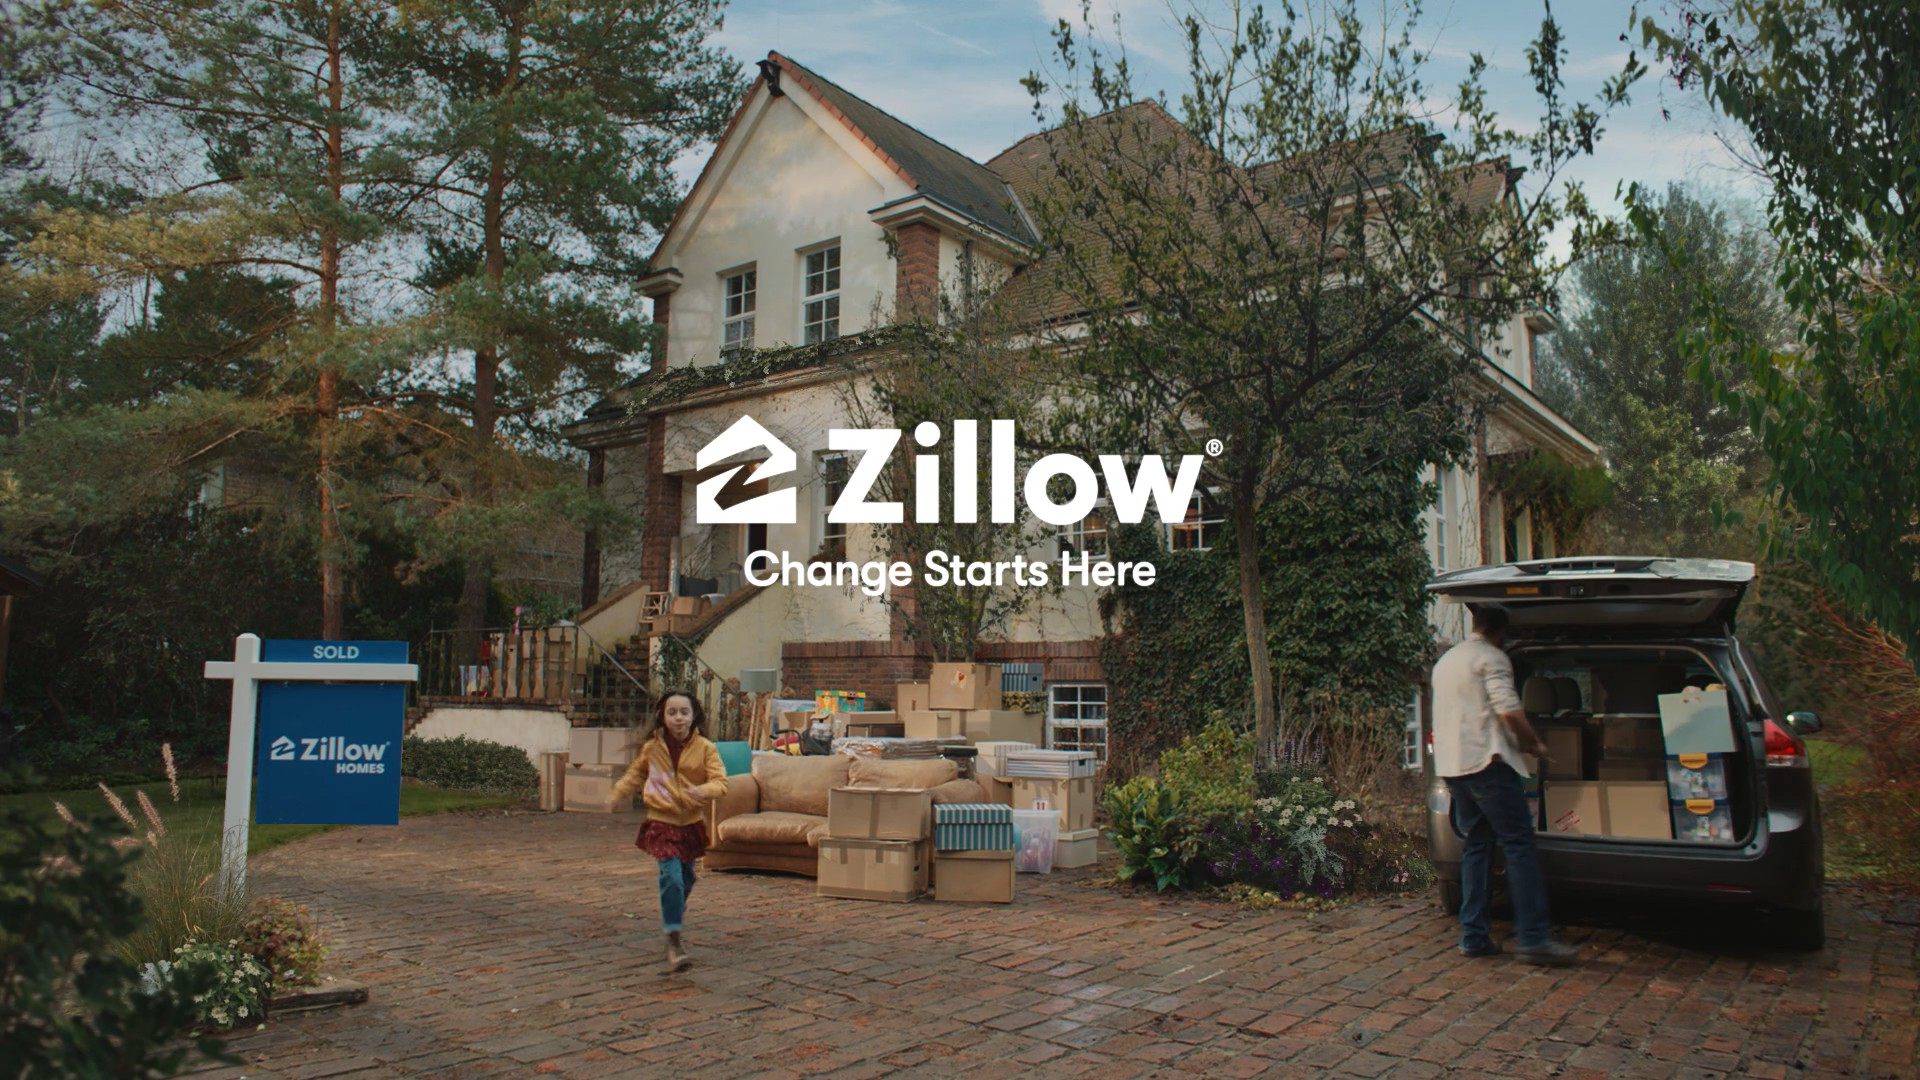 Zillow The Journey-0373